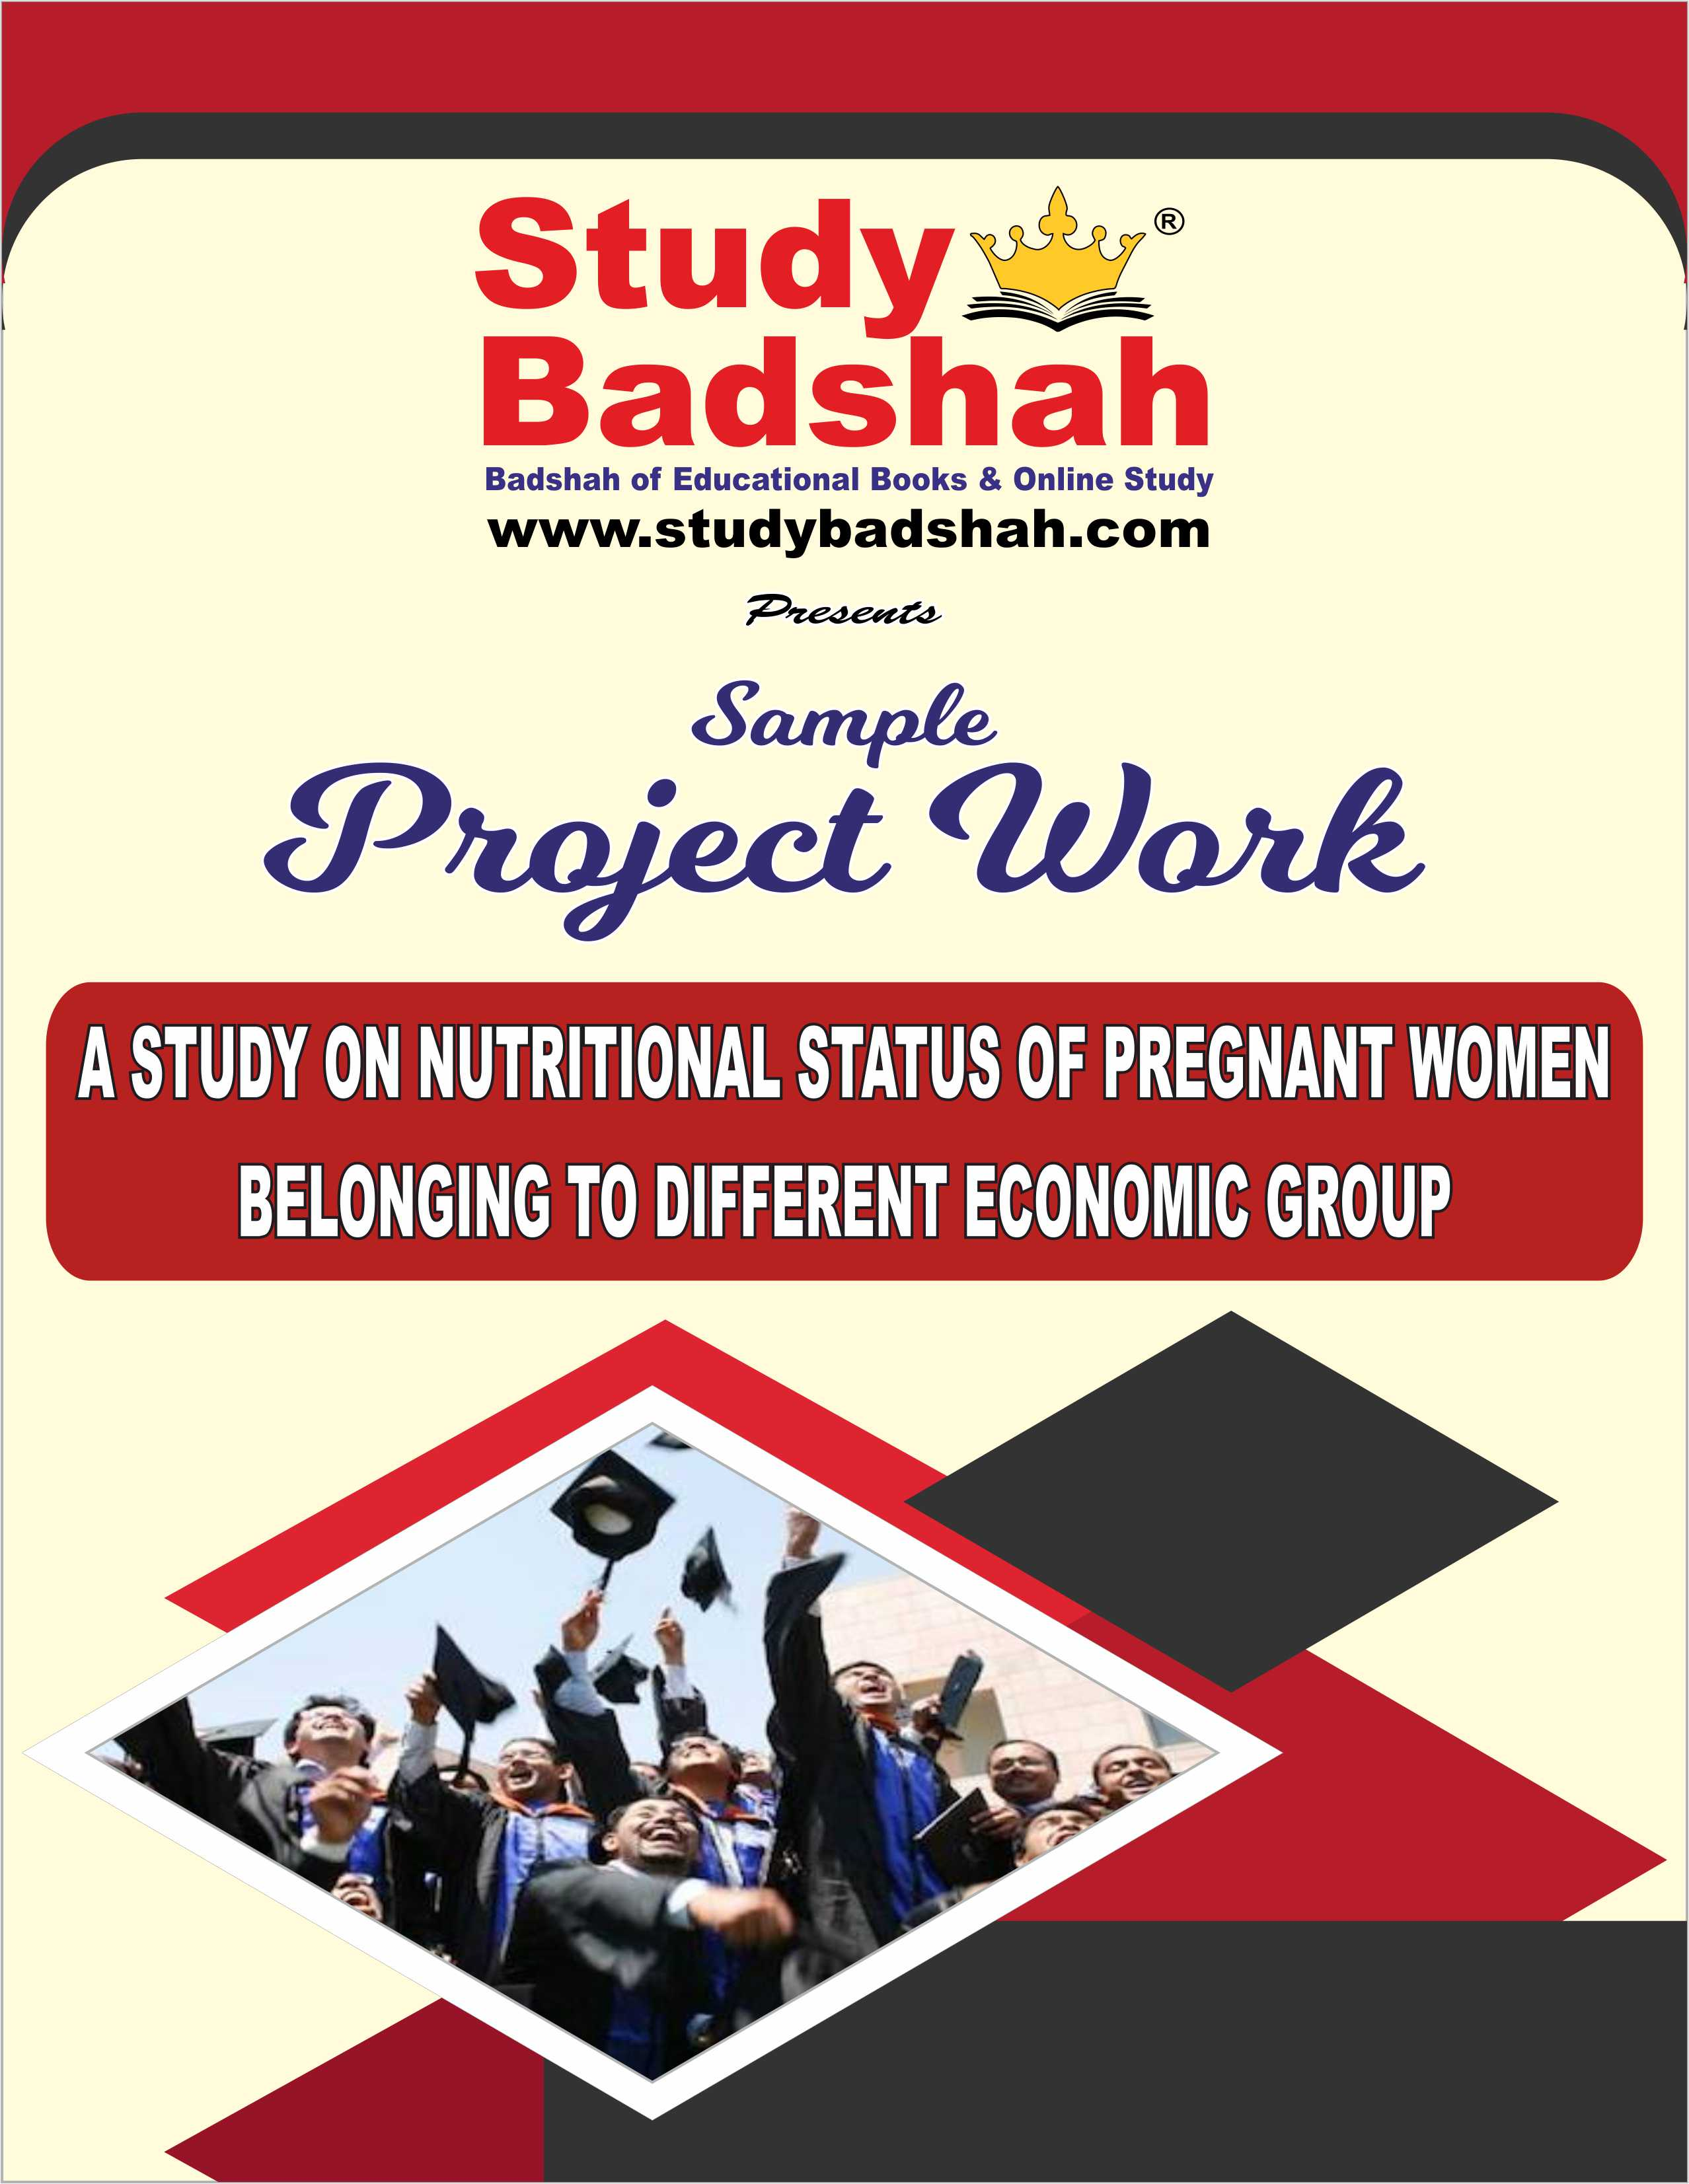 A STUDY ON NUTRITIONAL STATUS OF PREGNANT WOMEN BELONGING TO DIFFERENT ECONOMIC GROUP